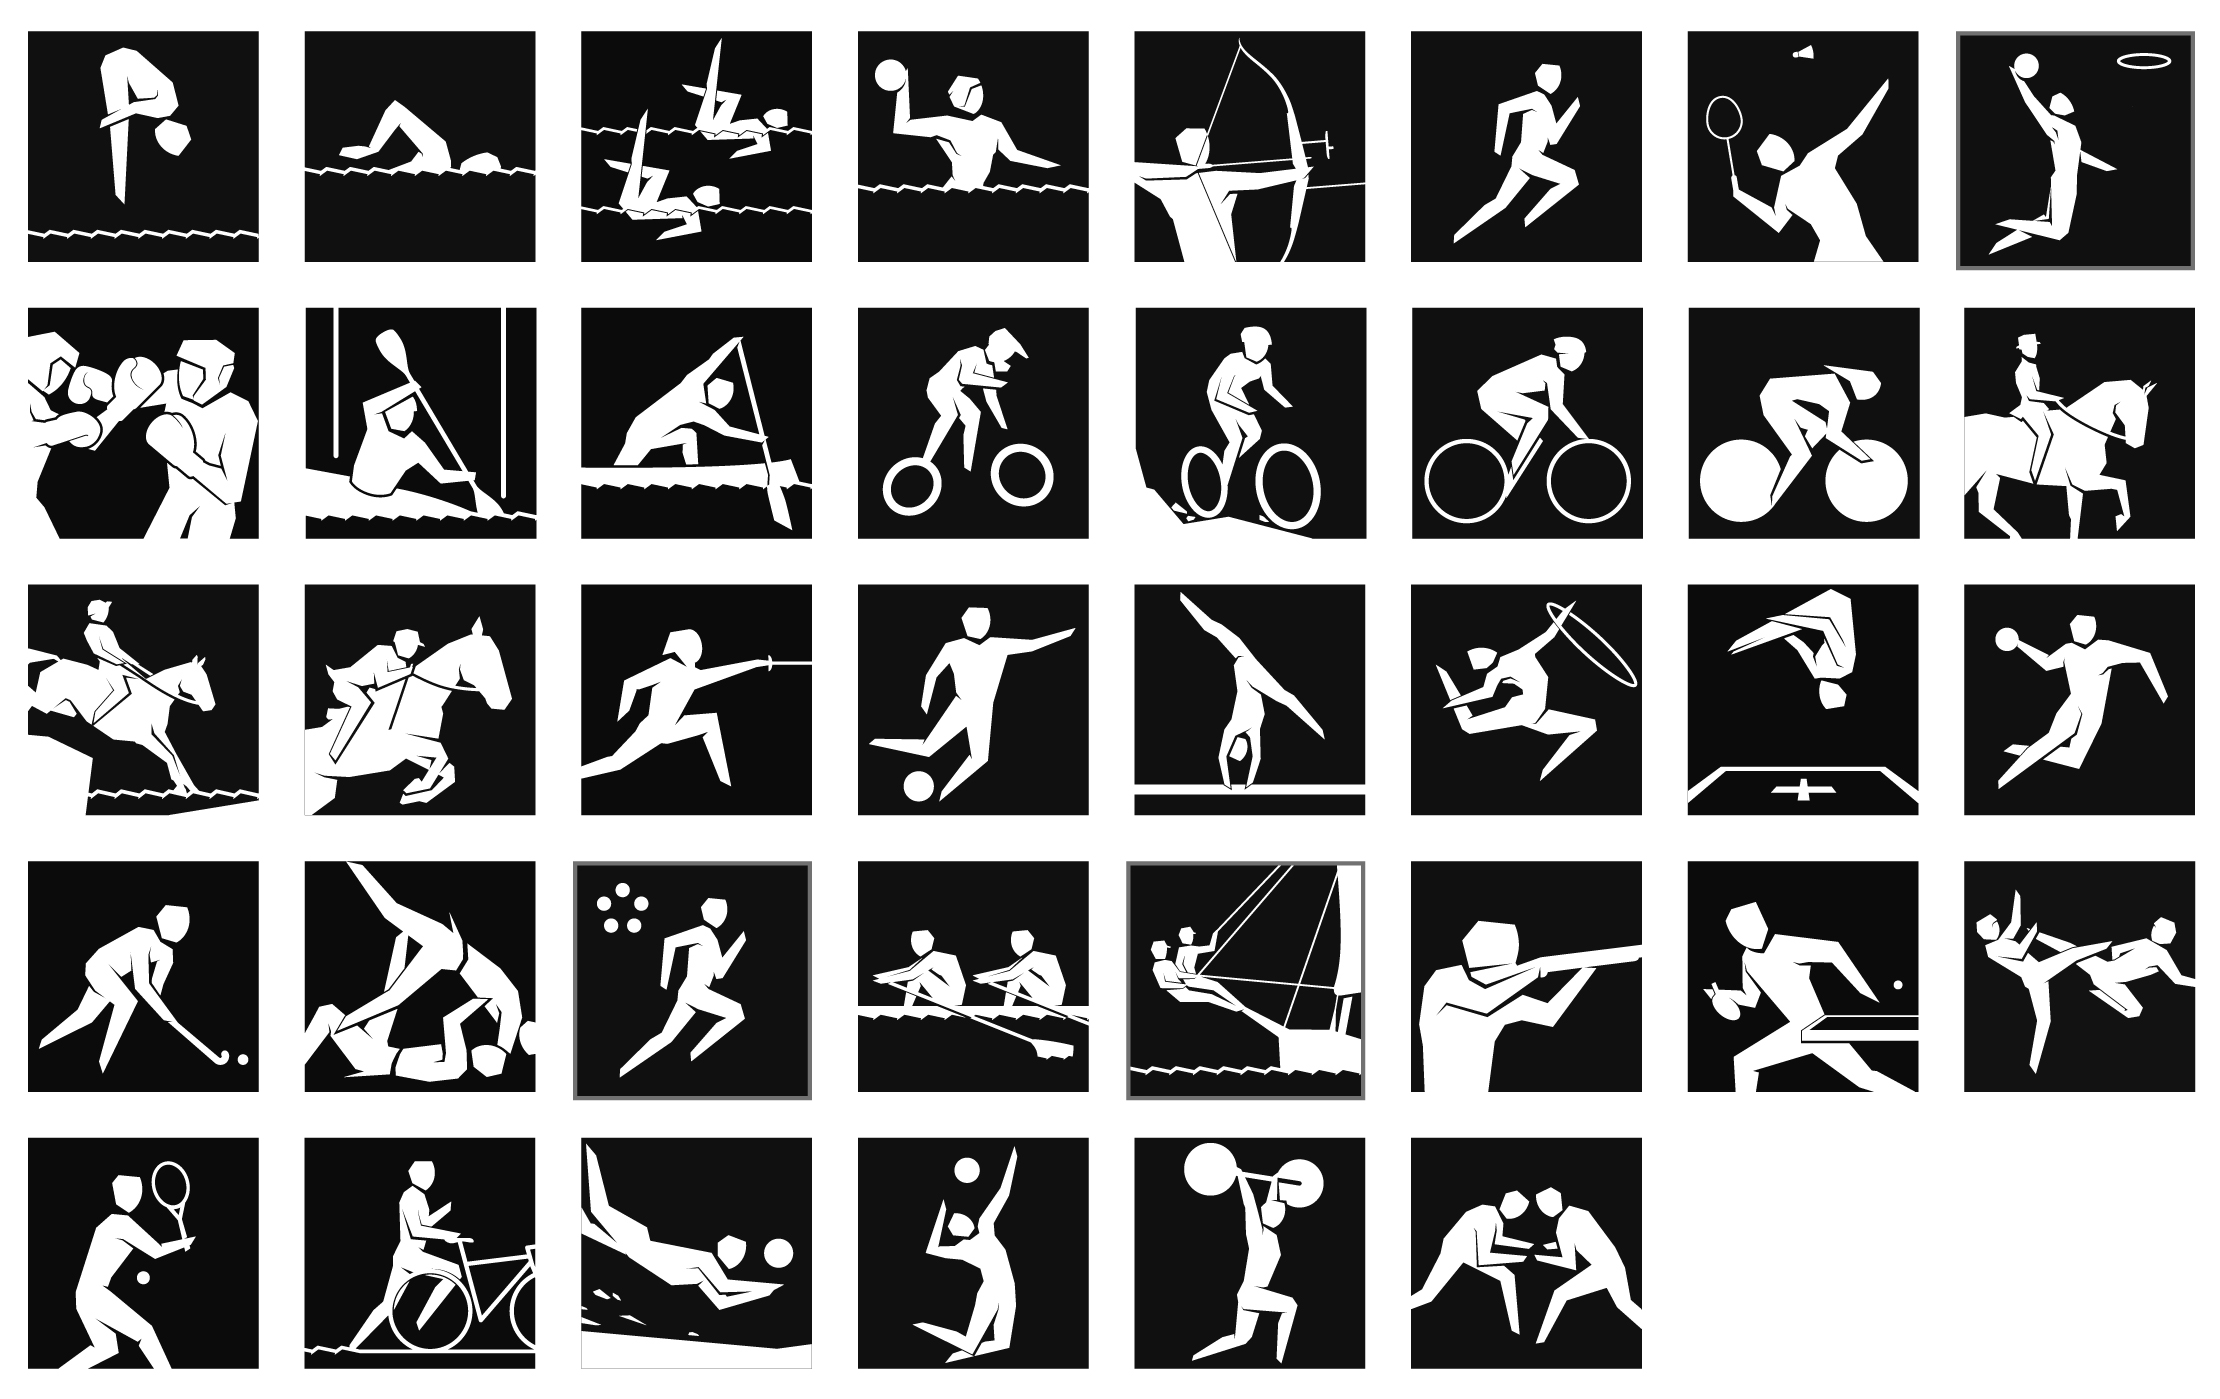 pictograms � architecture of the games